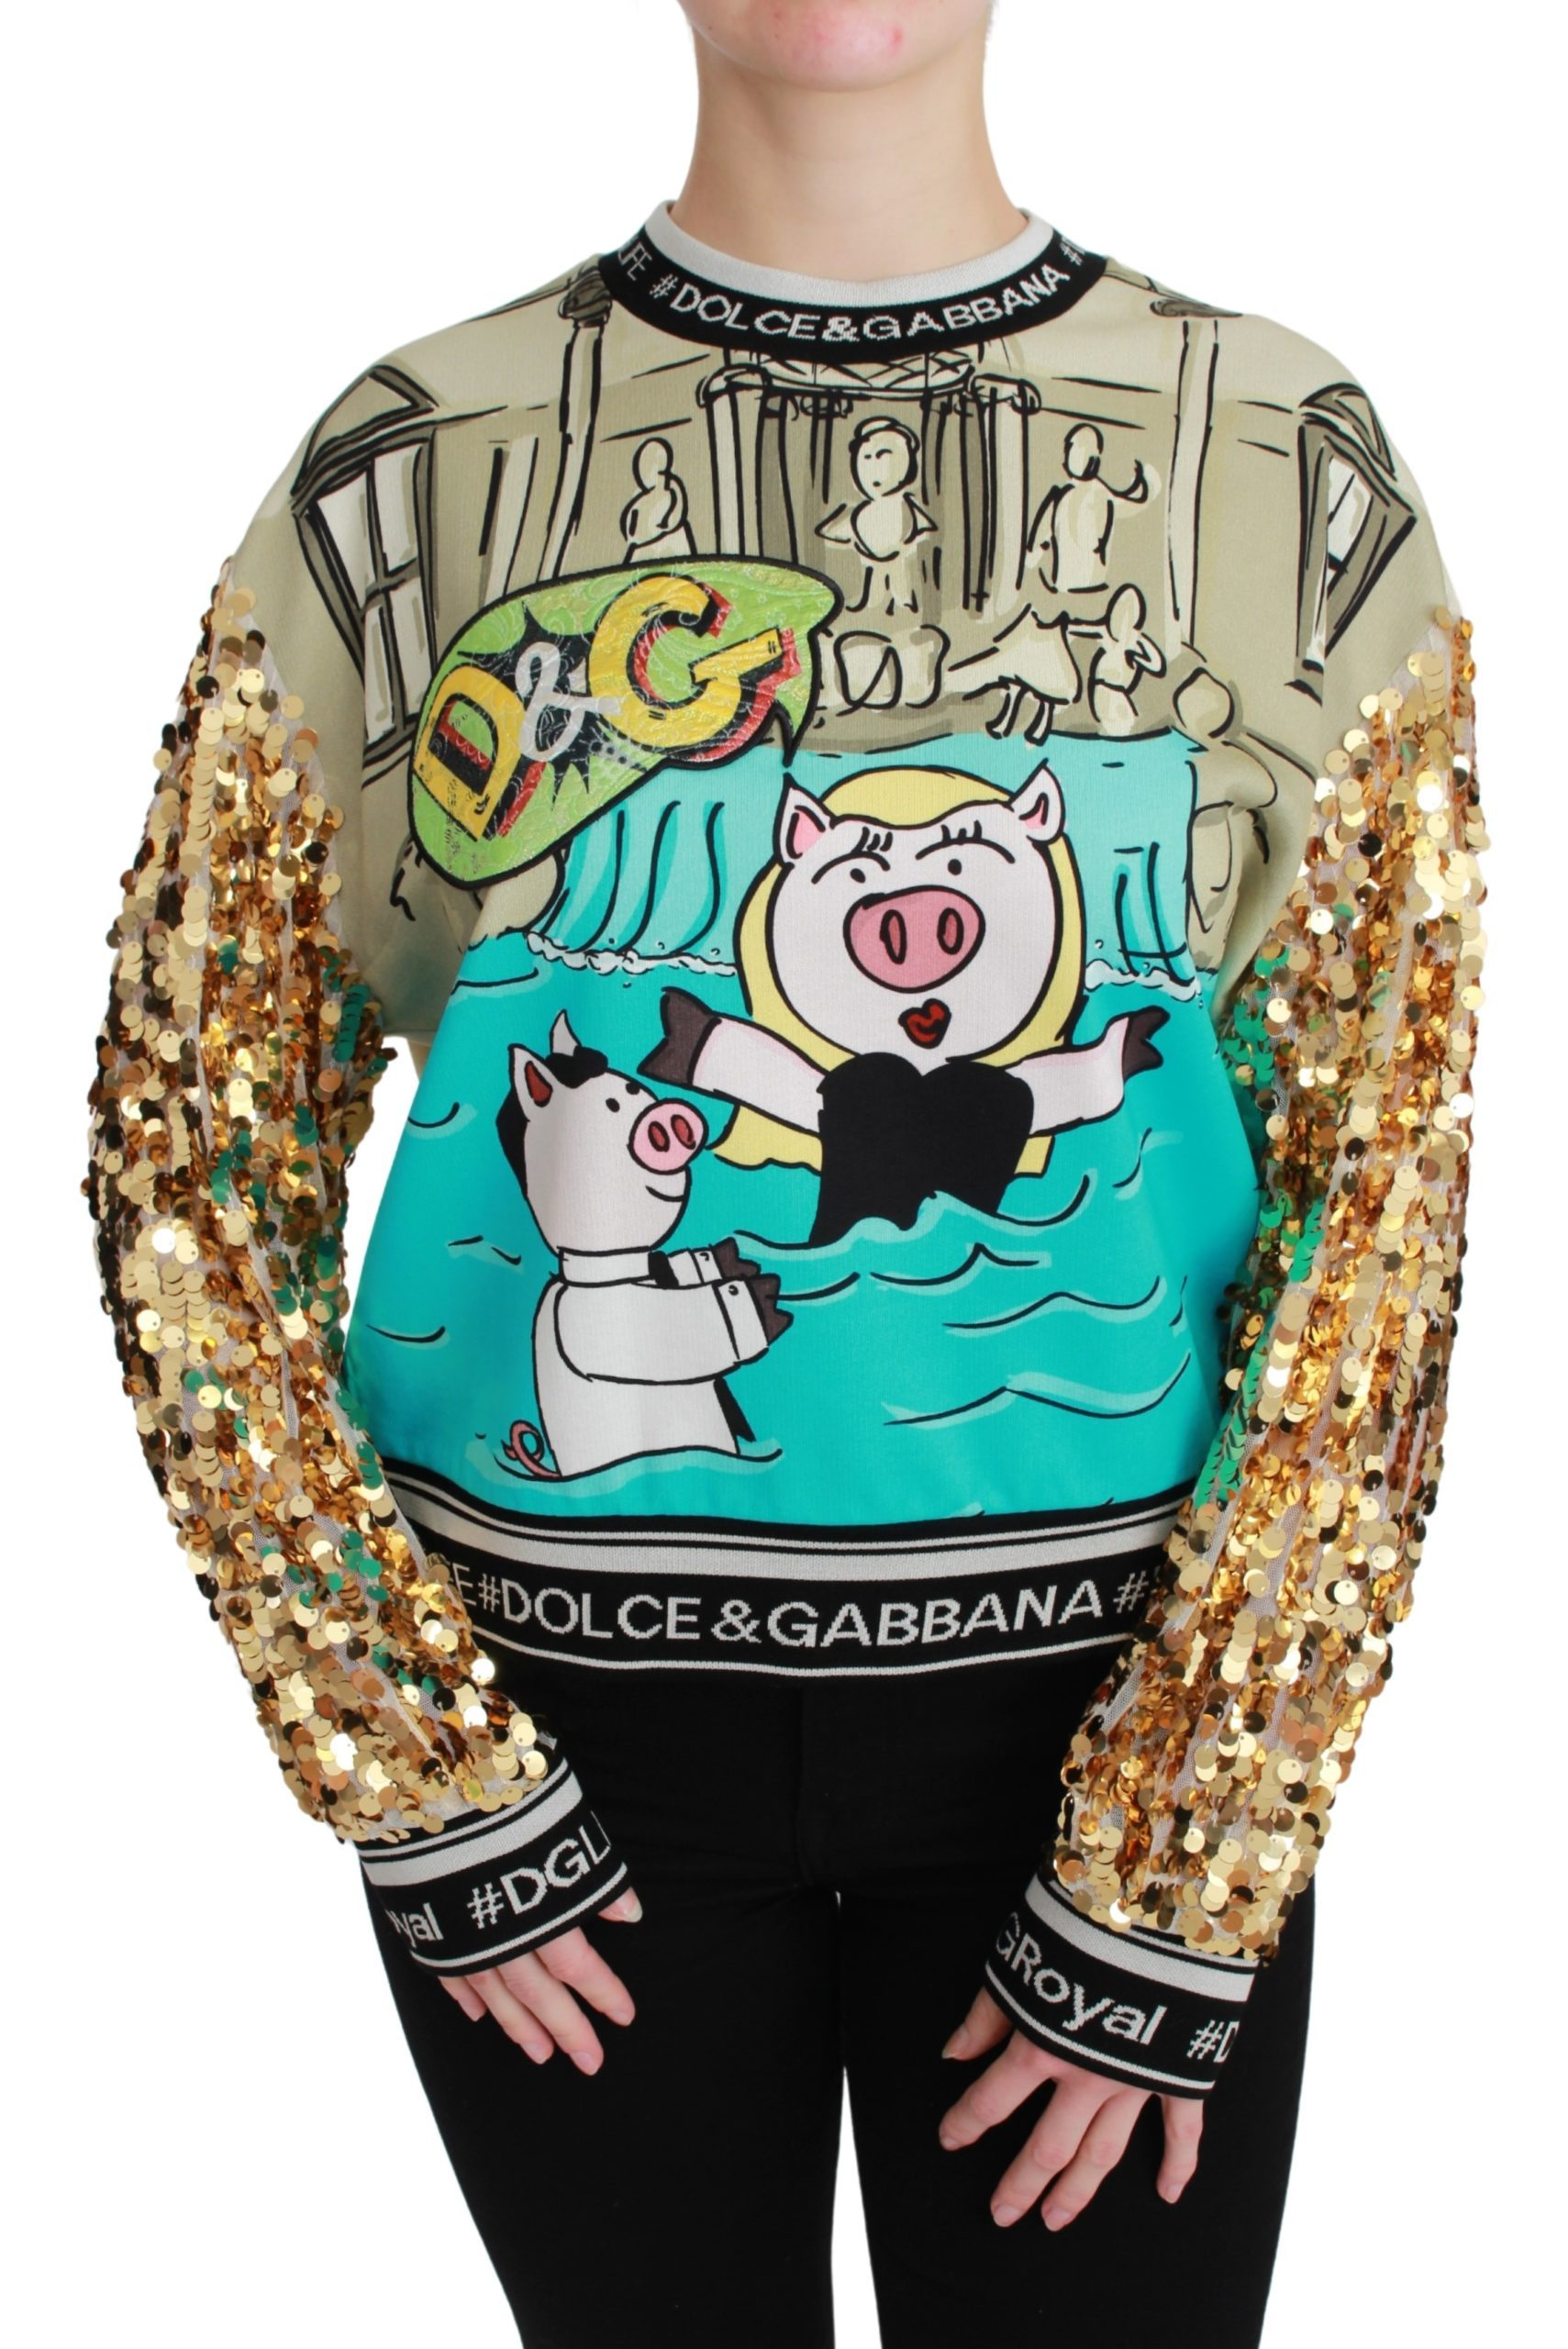 Dolce & Gabbana Women's Year of the Pig Sequined Sweater Multicolor TSH4667 - IT36   XS